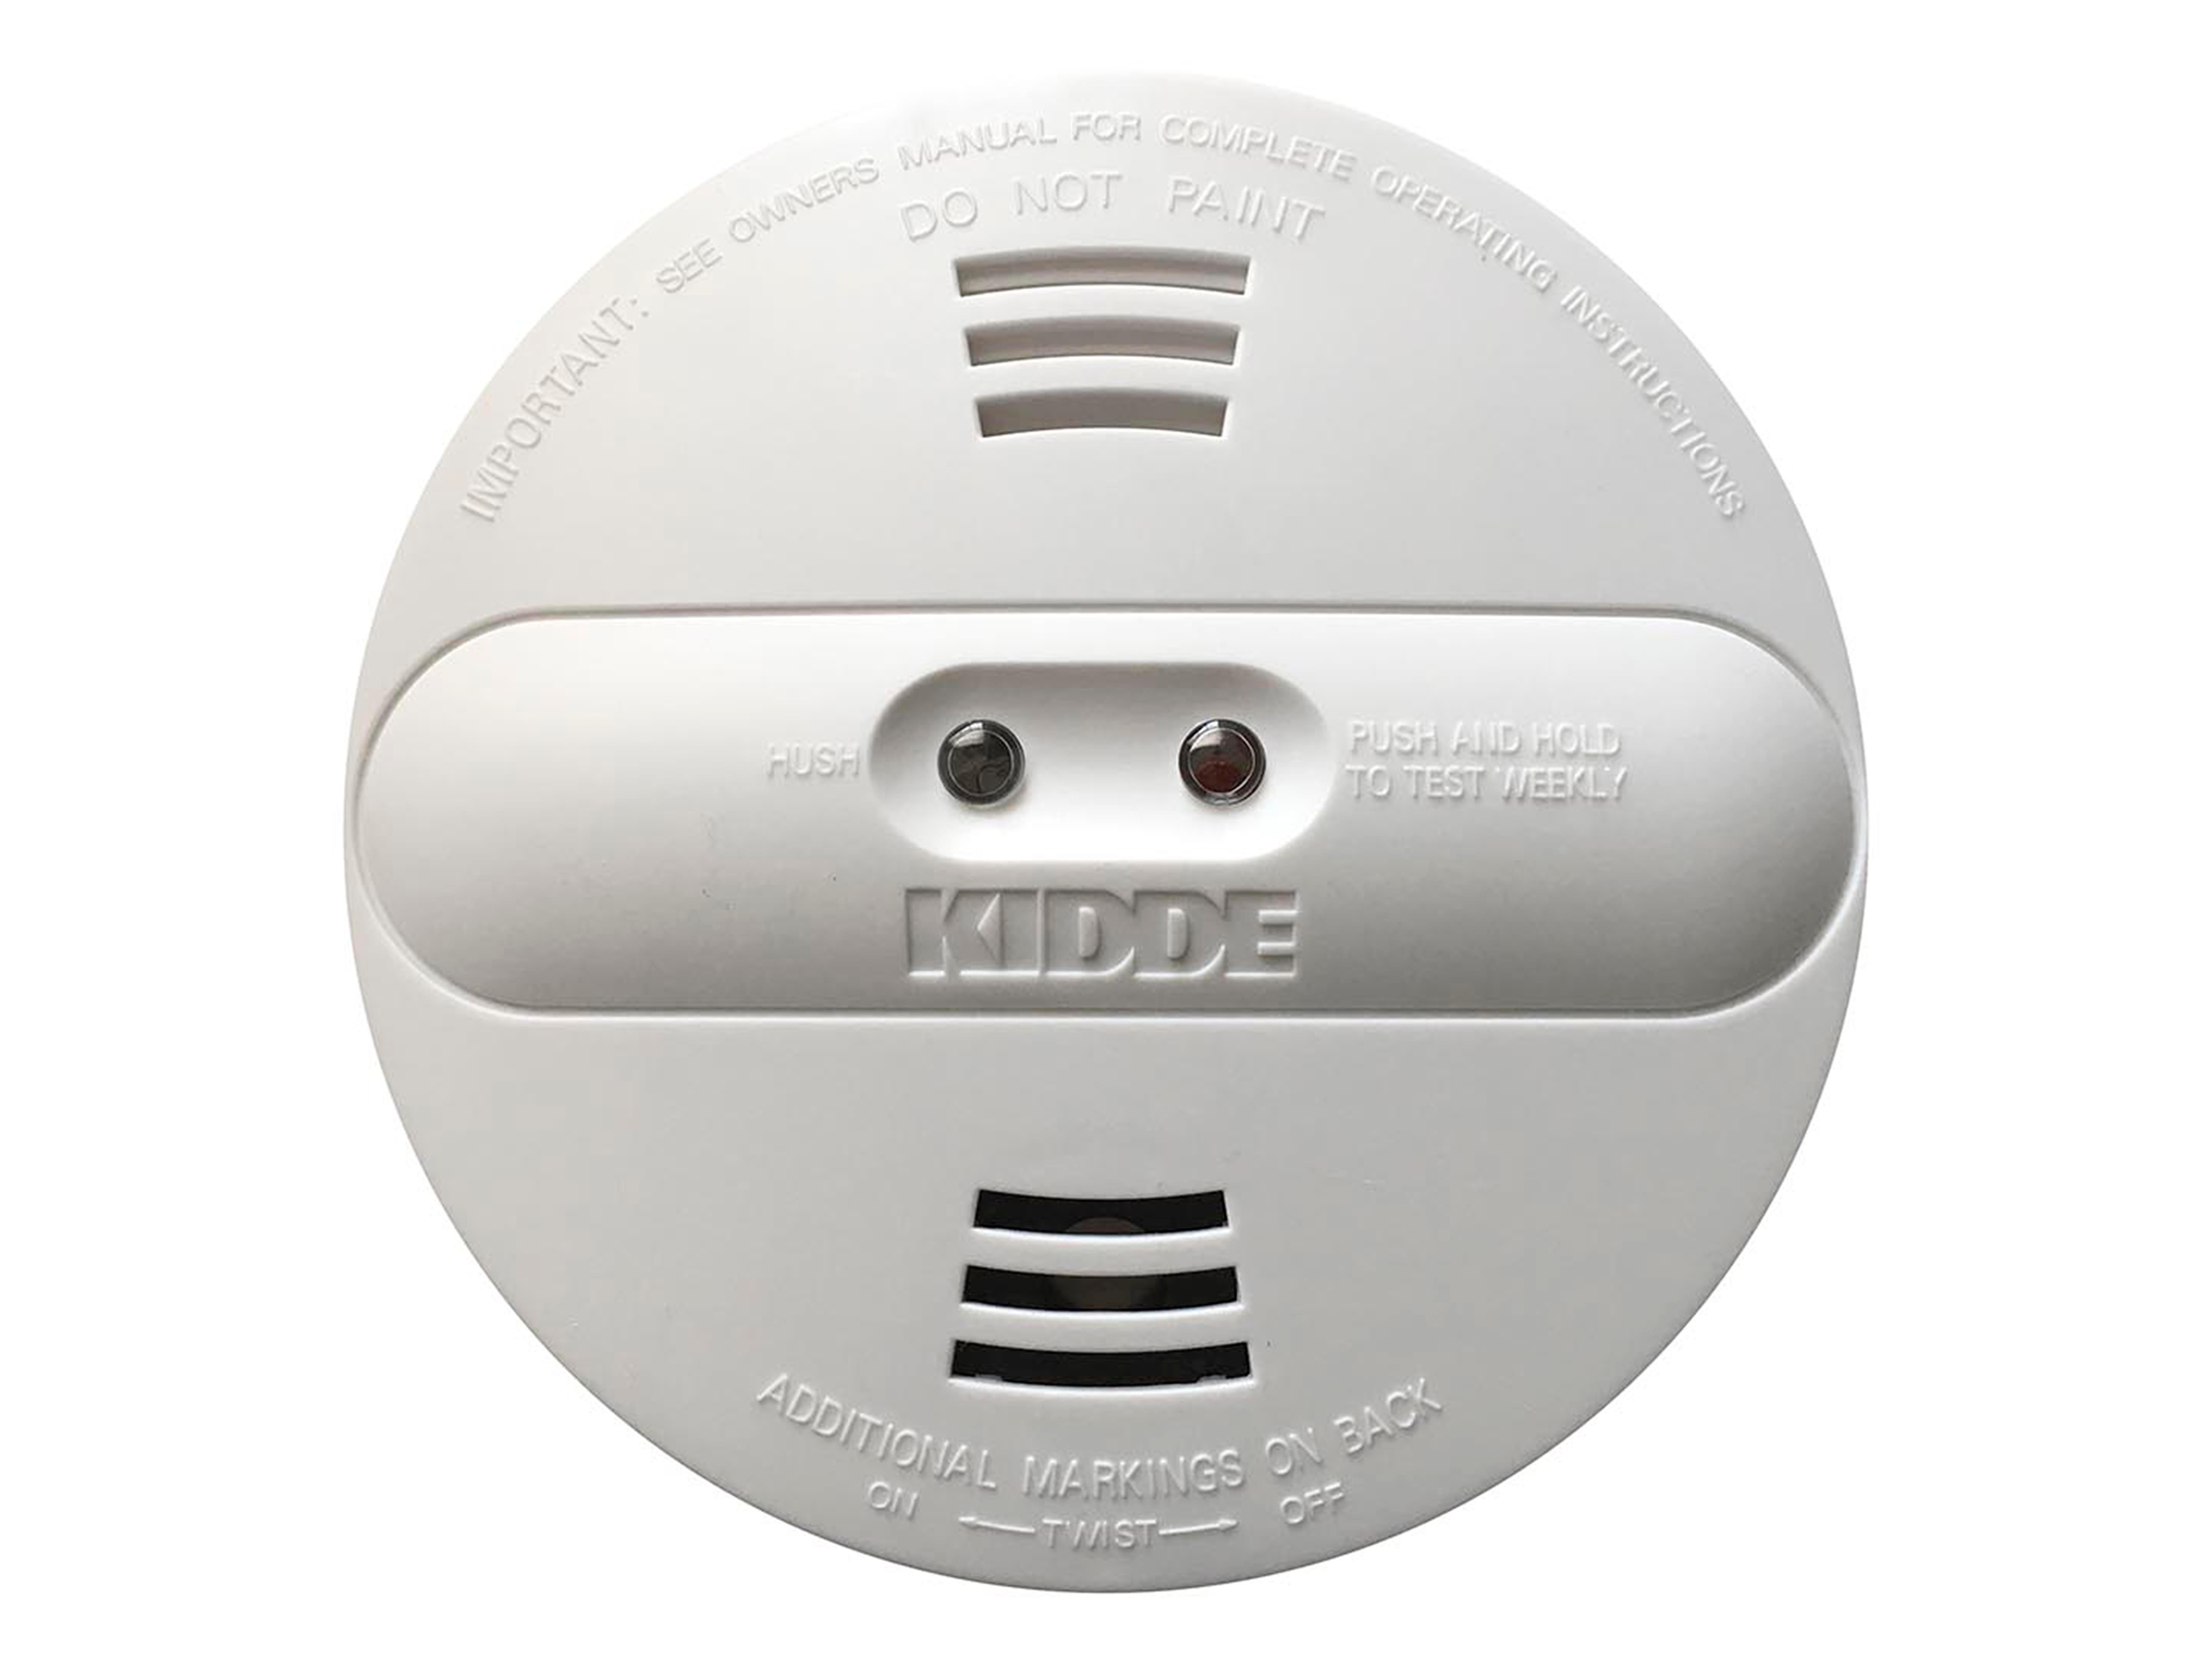 452K dual-sensor smoke alarms sold nationwide recalled. (Consumer Product Safety Commission)